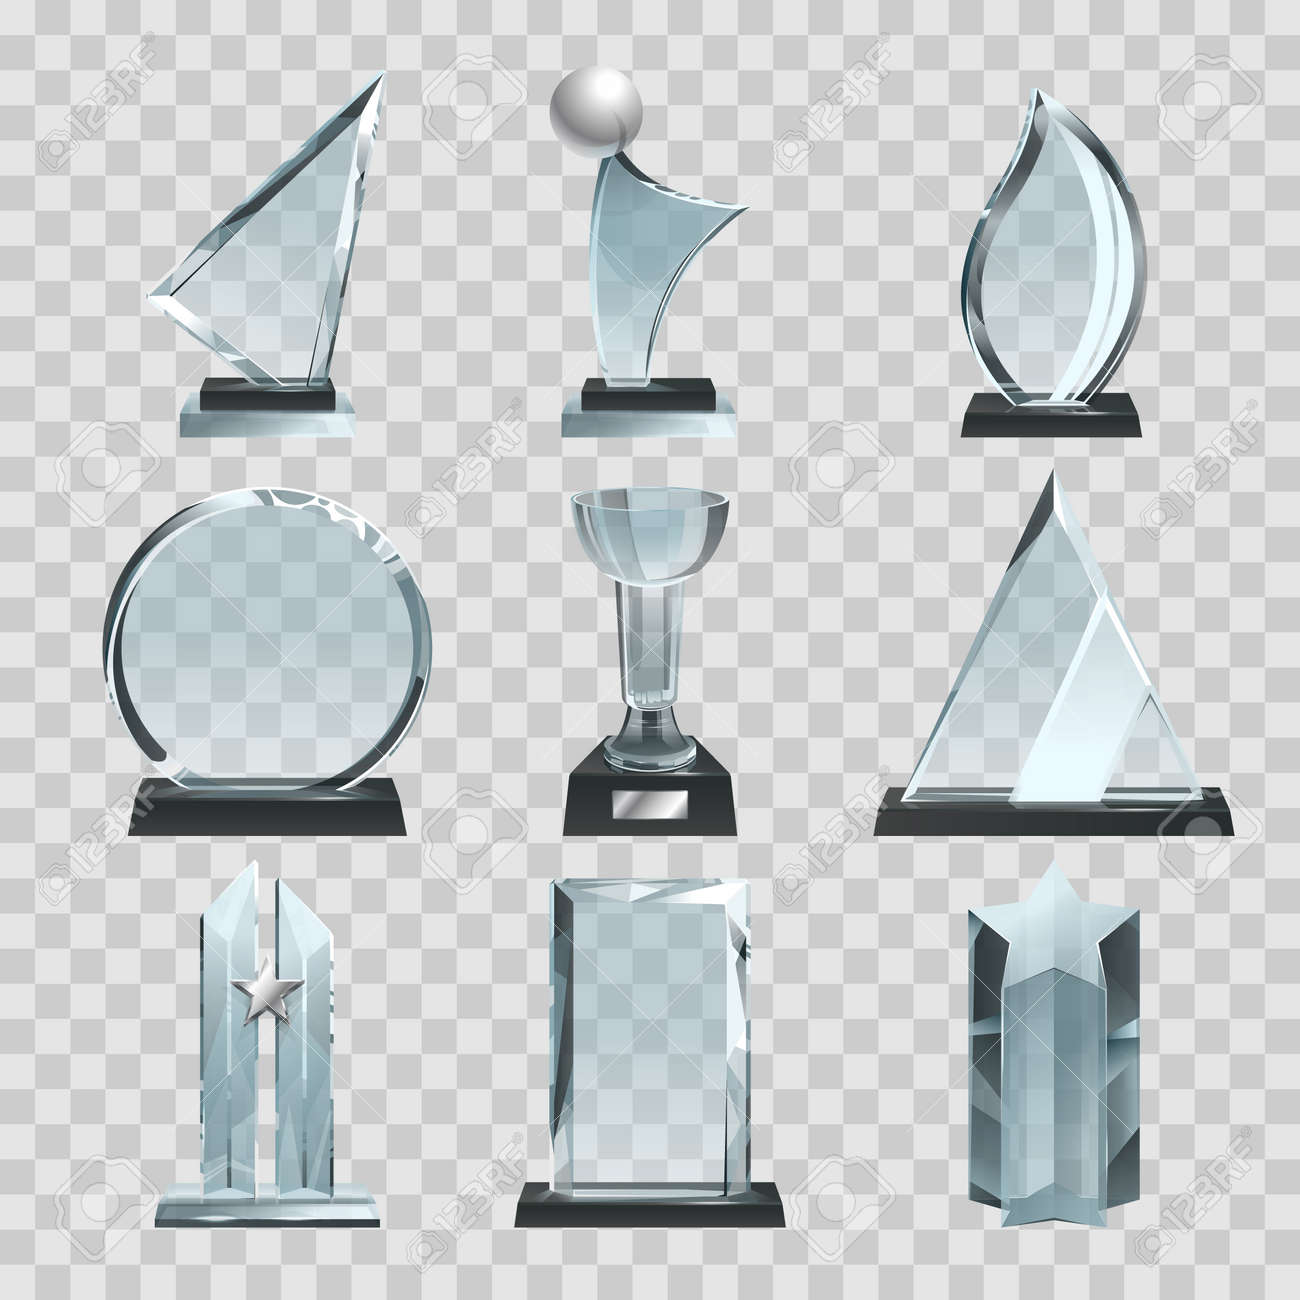 Glossy transparent trophies, awards and winner cups. Vector illustration. Achievement glass for winner championship, acrylic trophy sport - 166843560